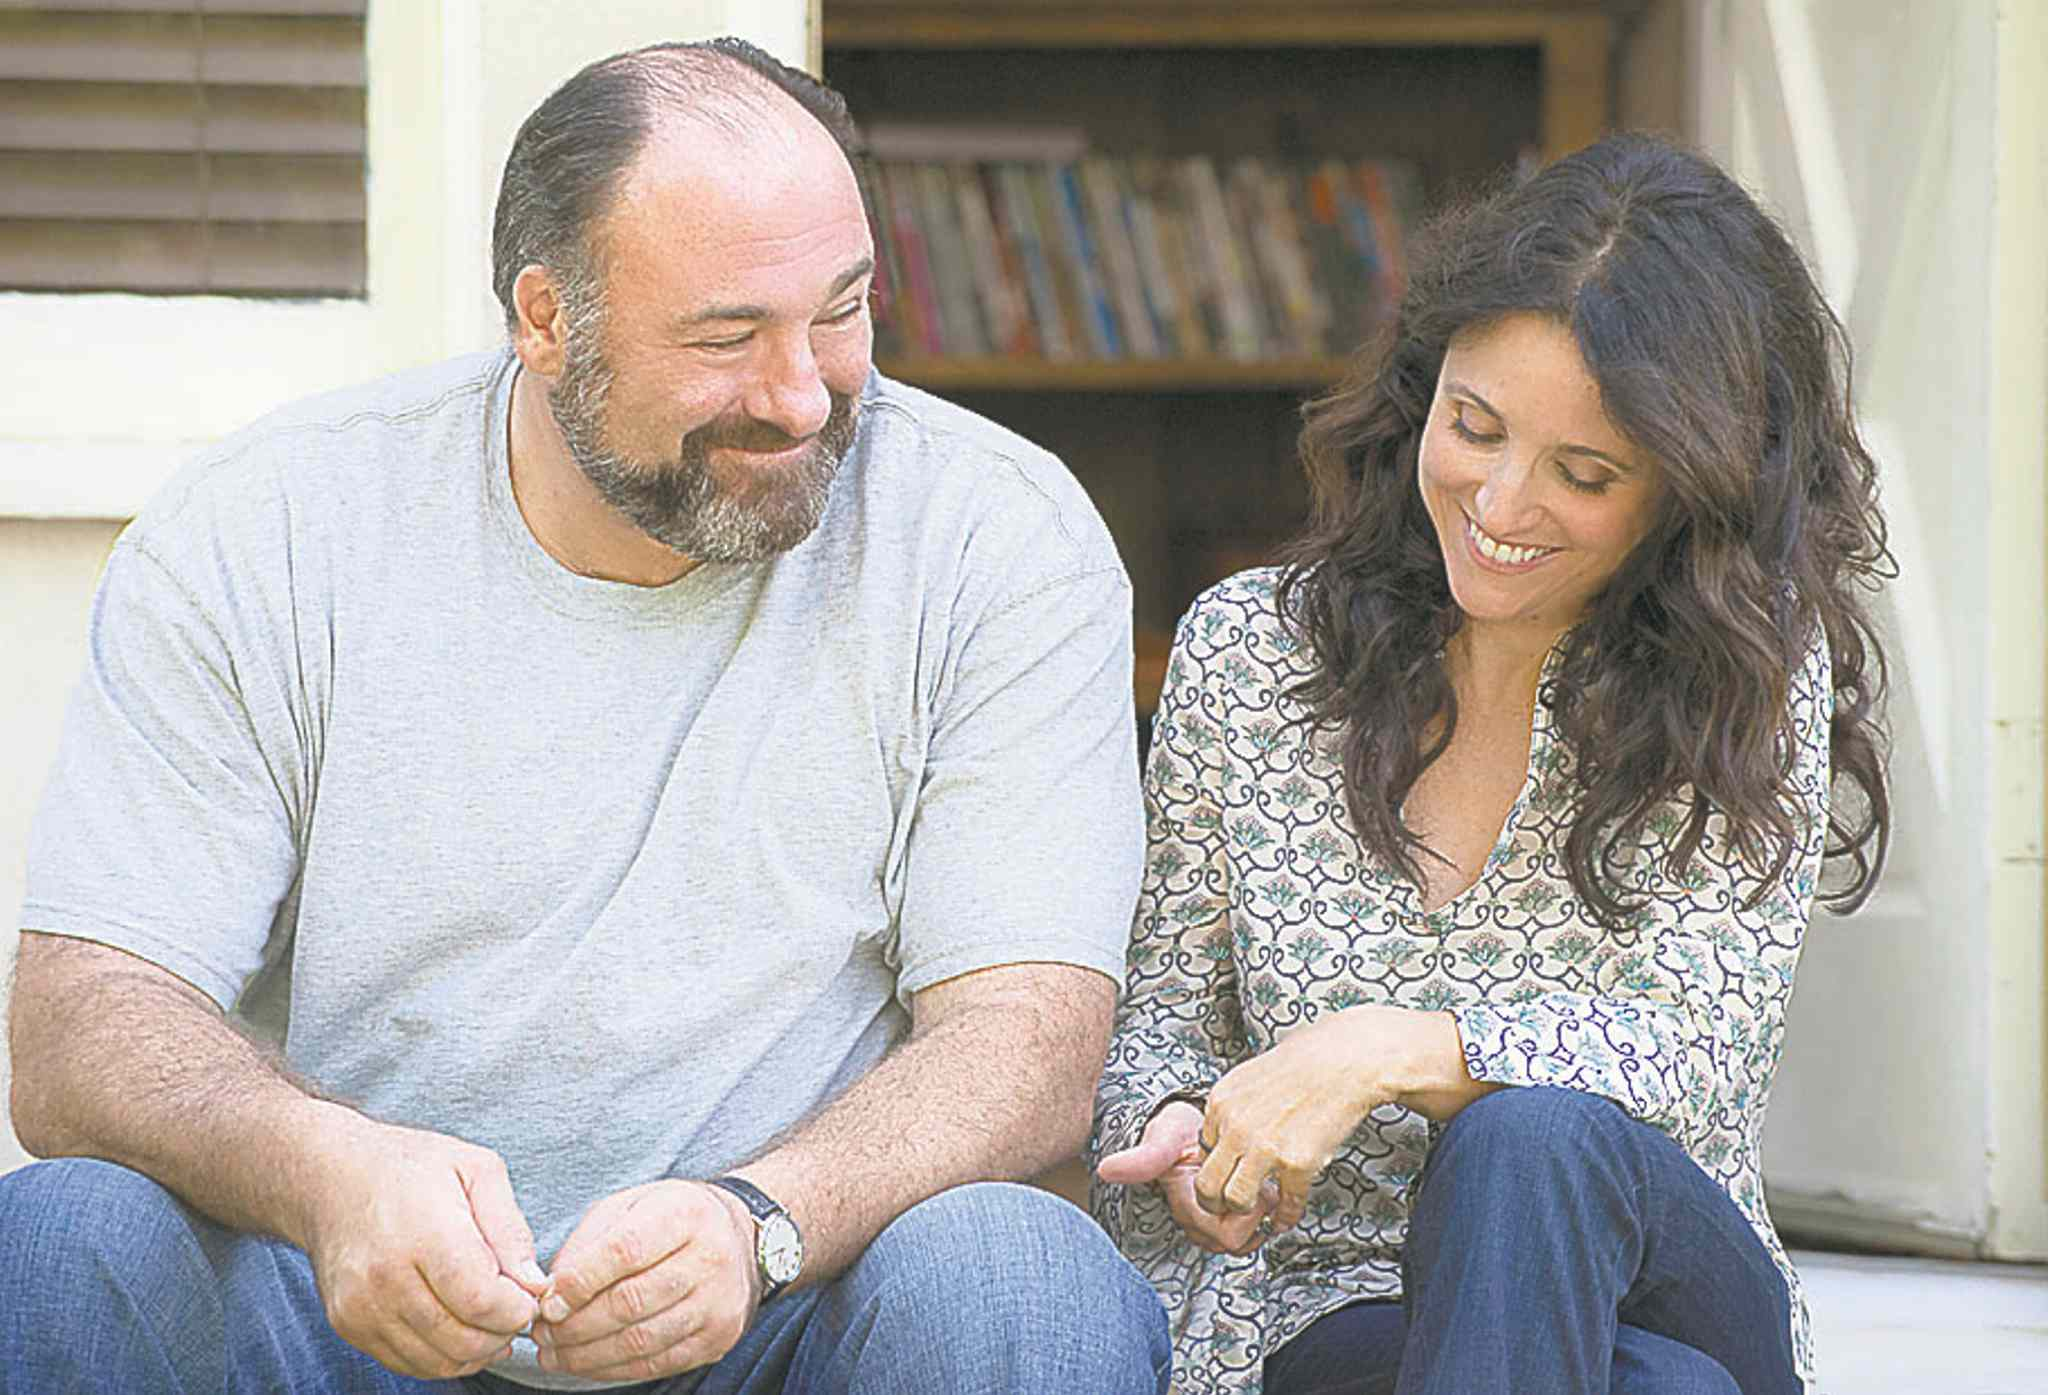 James Gandolfini and Julia Louis-Dreyfus play single parents who fall in love.